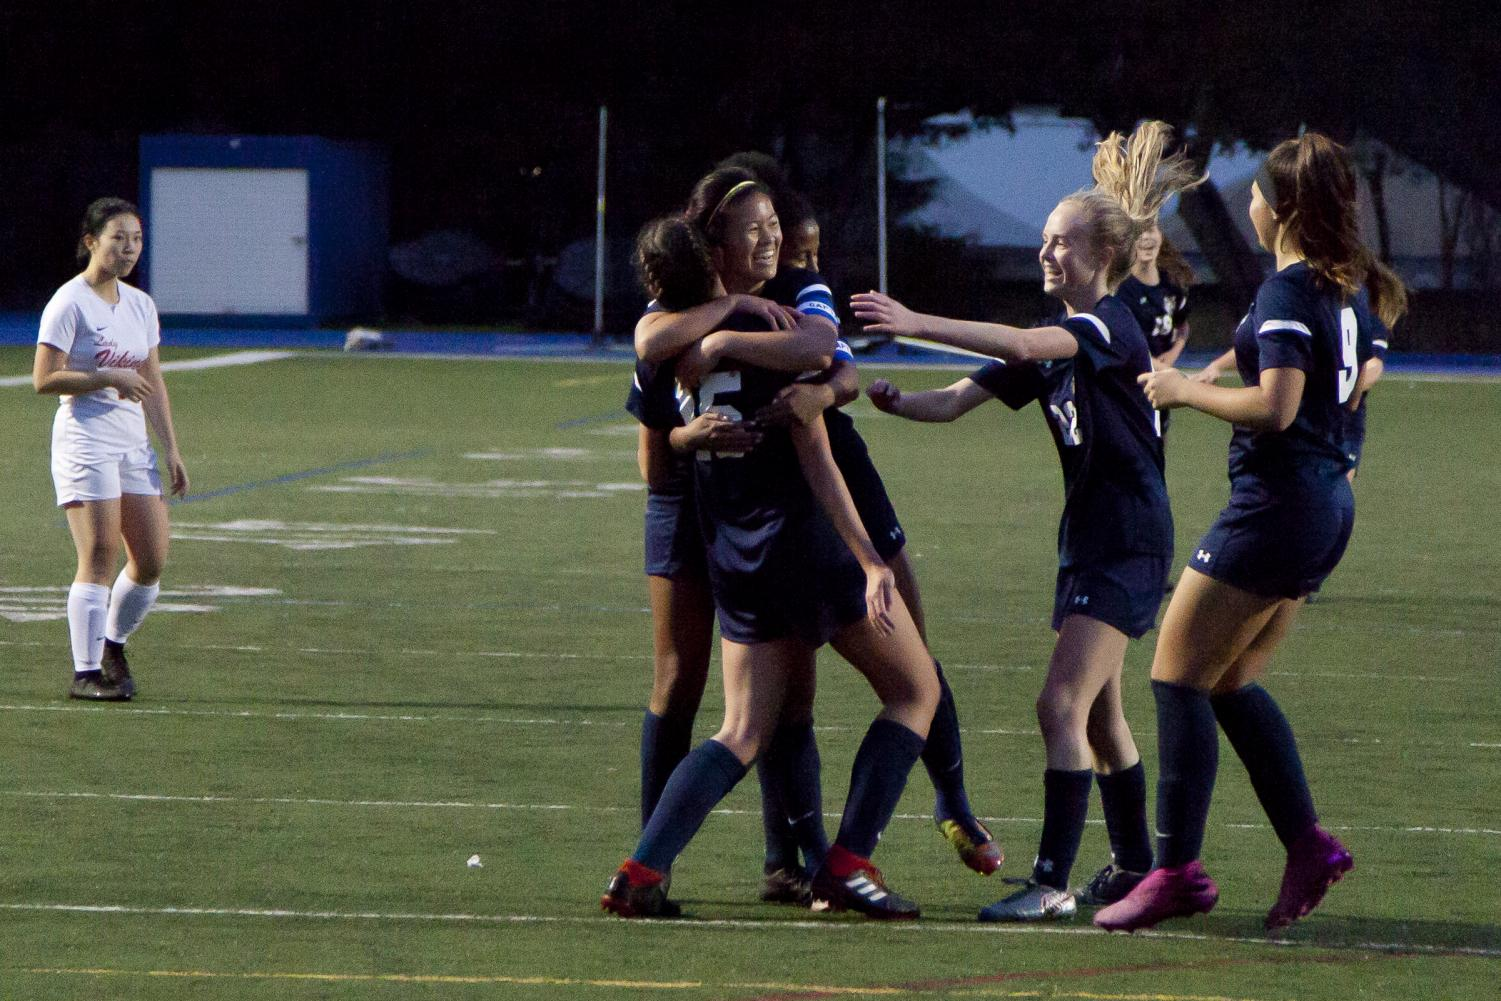 Carlmont celebrates a goal scored by Katie Blondino.